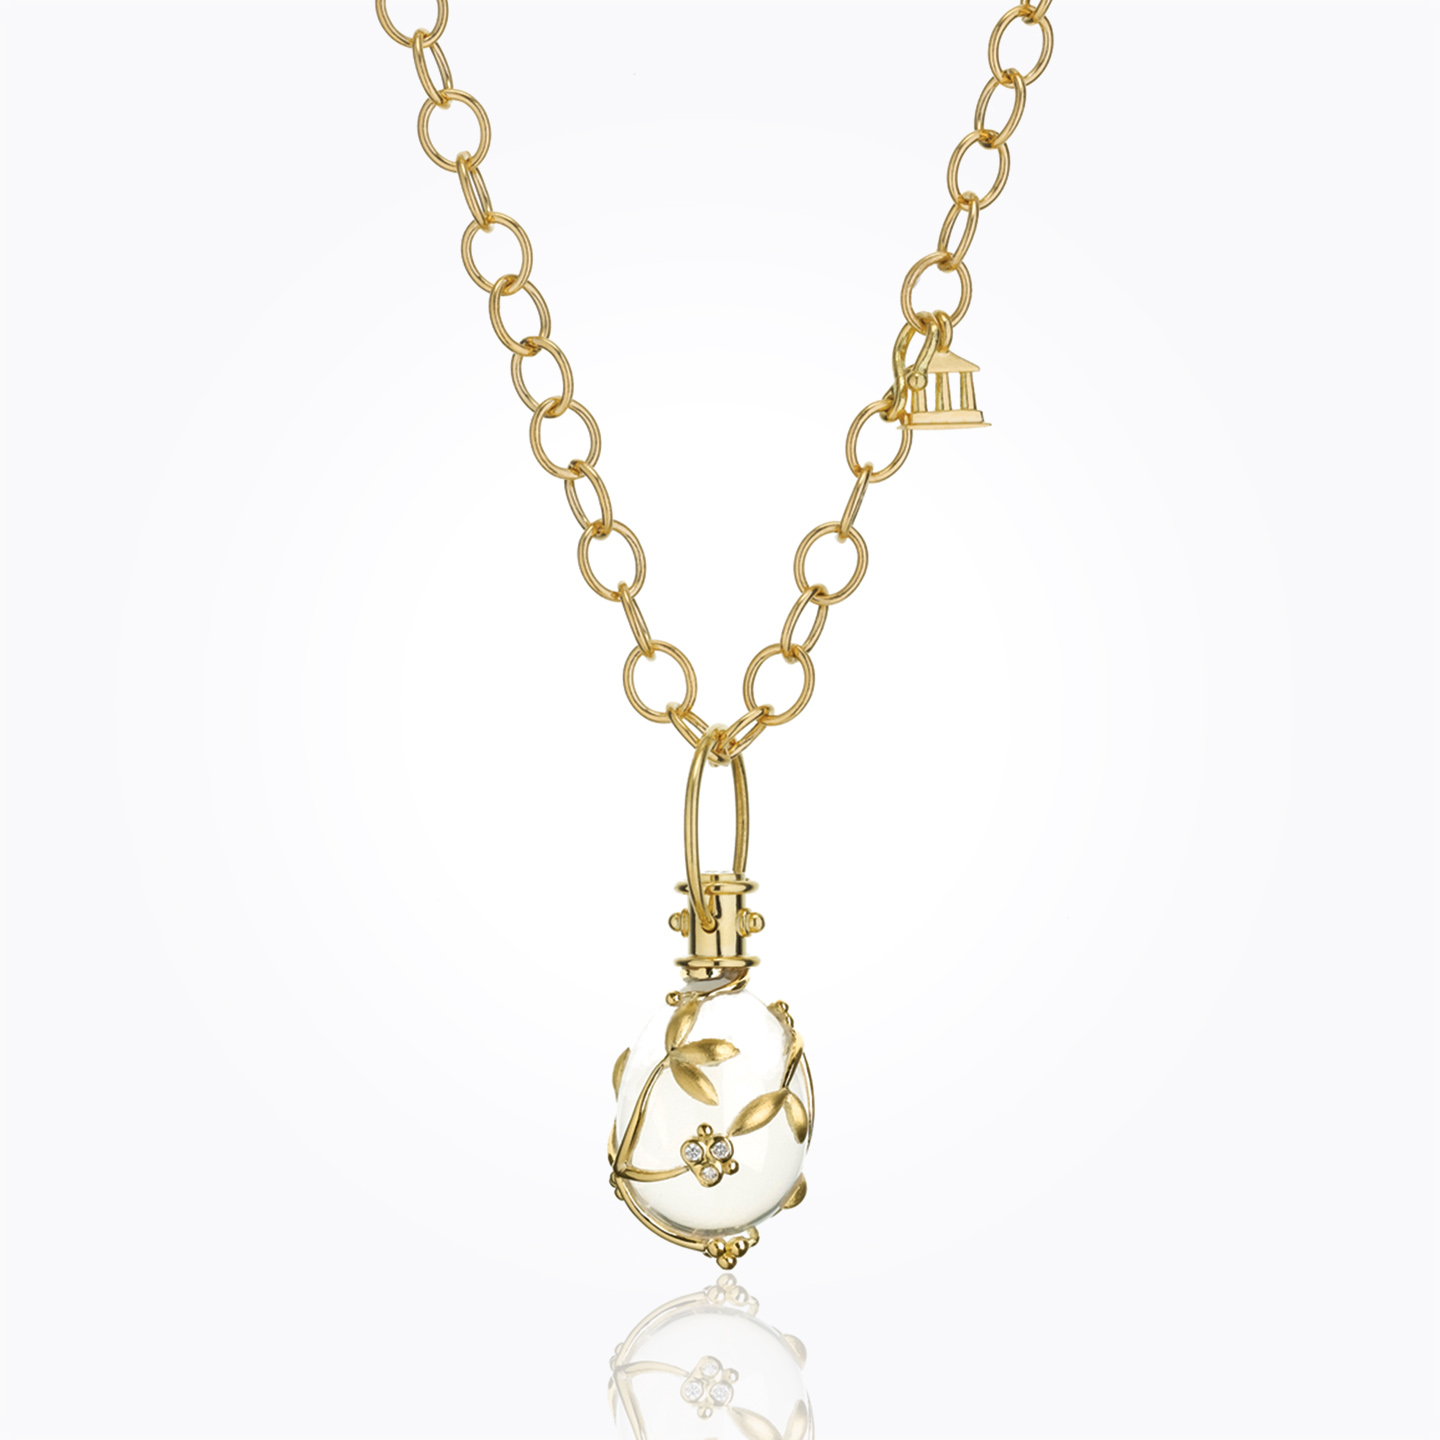 18K Vine Amulet with oval rock crystal and diamond - alternate